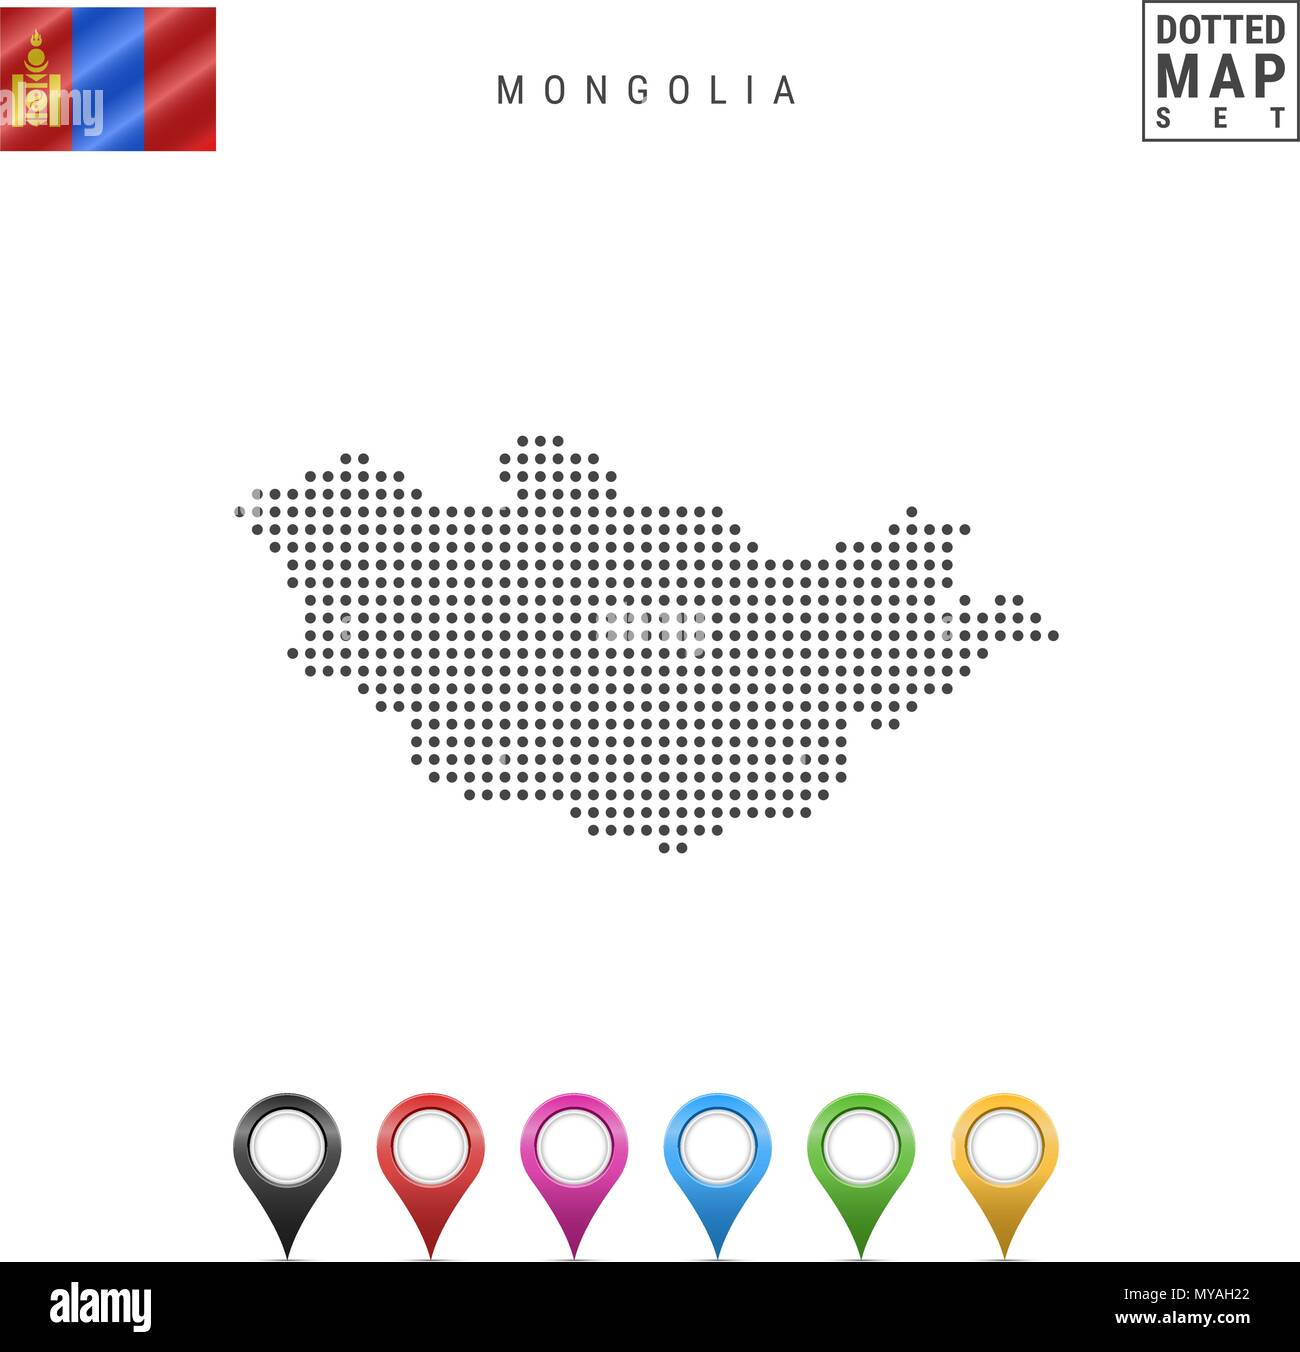 Vector Dotted Map of Mongolia. Simple Silhouette of Mongolia. National Flag of Mongolia. Set of Multicolored Map Markers - Stock Image